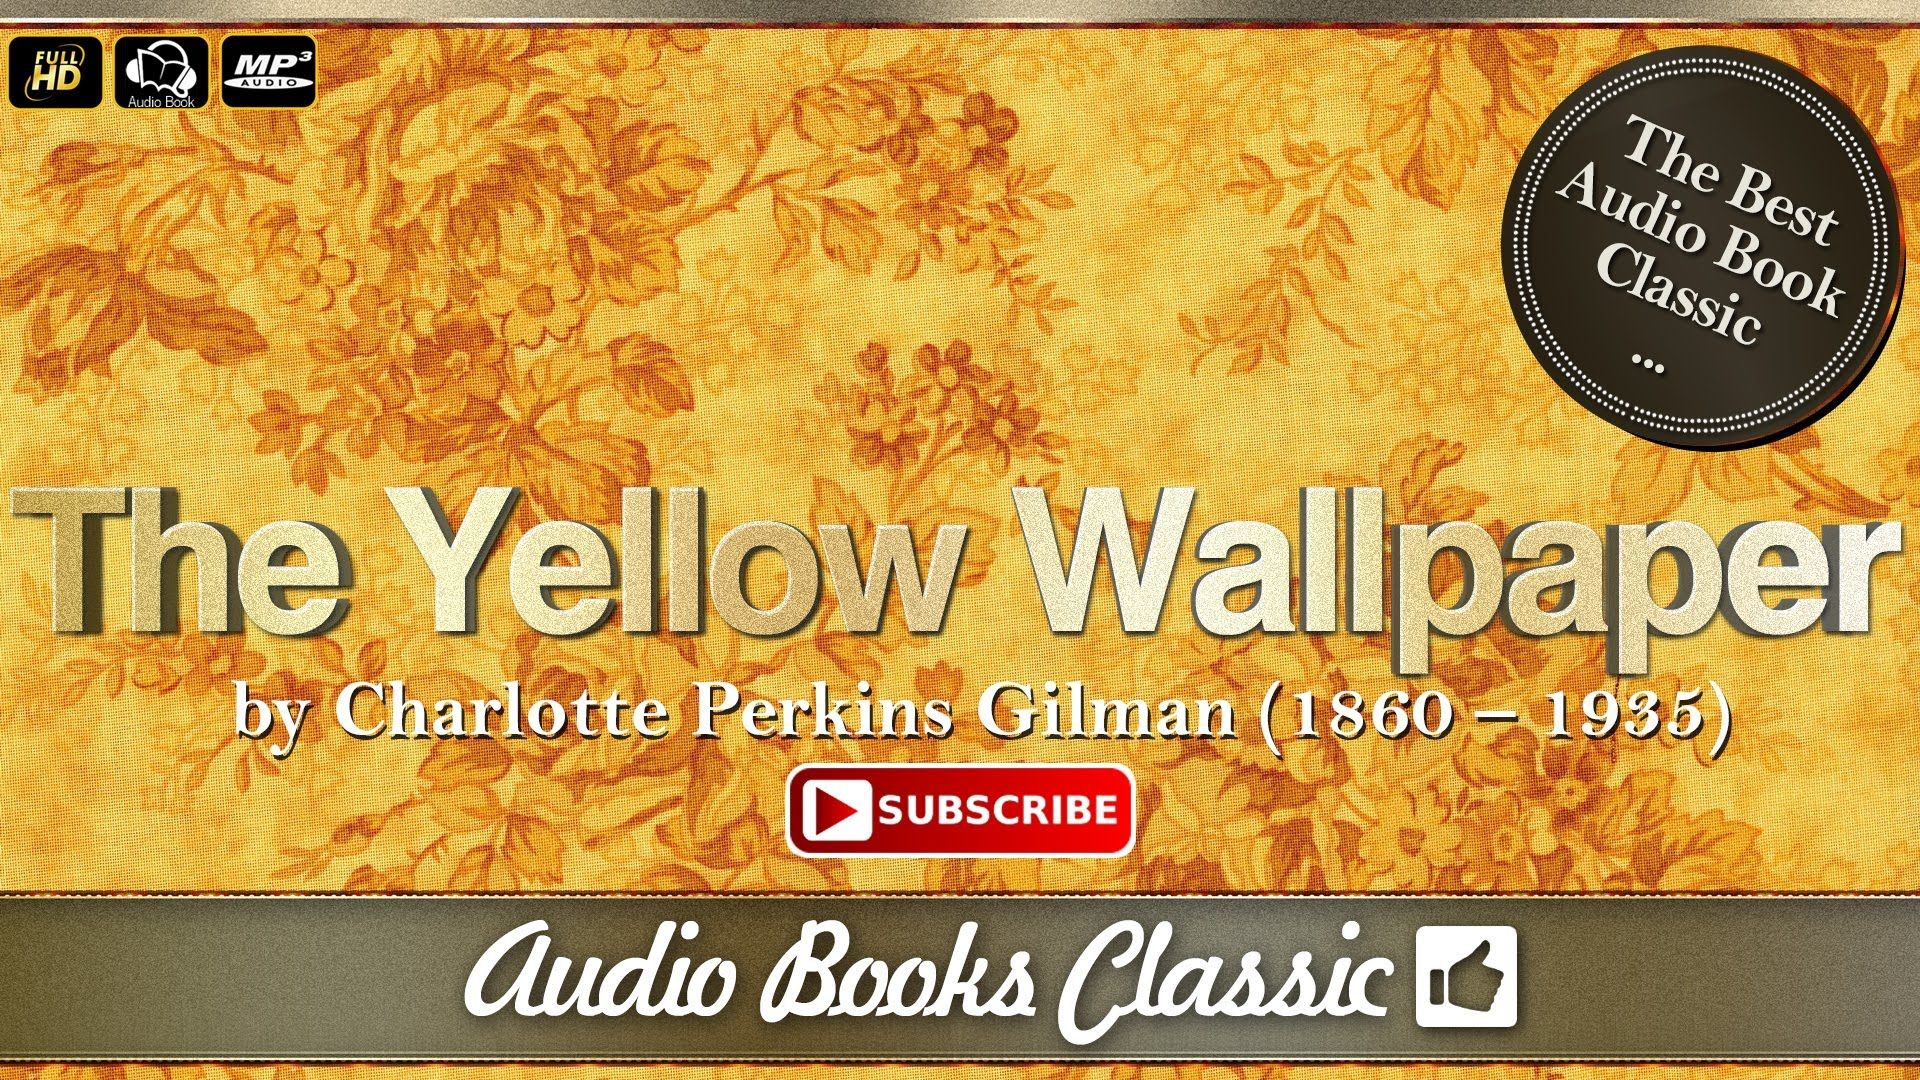 an analysis of individual acceptance in the yellow wallpaper by charlotte perkins gilman The yellow wallpaper by charlotte perkins gilman highlights men's prejudice against women & mental illness the yellow wall-paper, written by charlotte perkins stetson, explores the attitudes of doctors towards women and mental illness in the late 19th century.